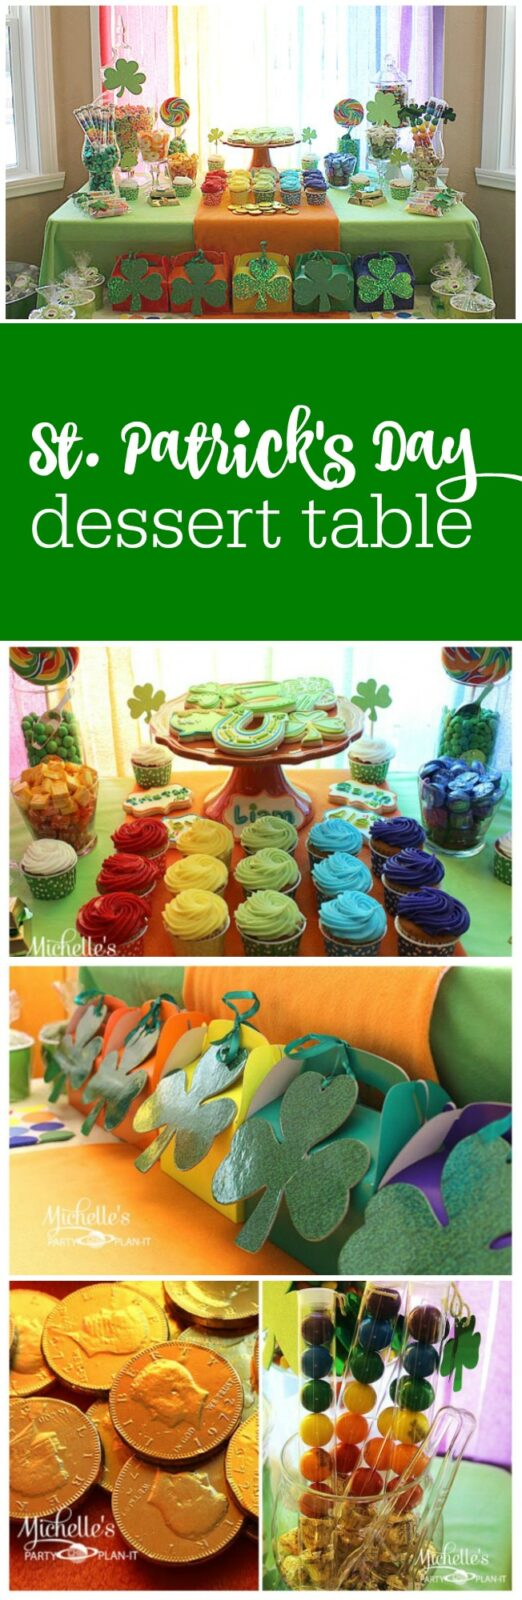 Pot of gold at the end of rainbow St. Patrick's Day Party by Michelle's Party Plan-It featured on The Party Teacher